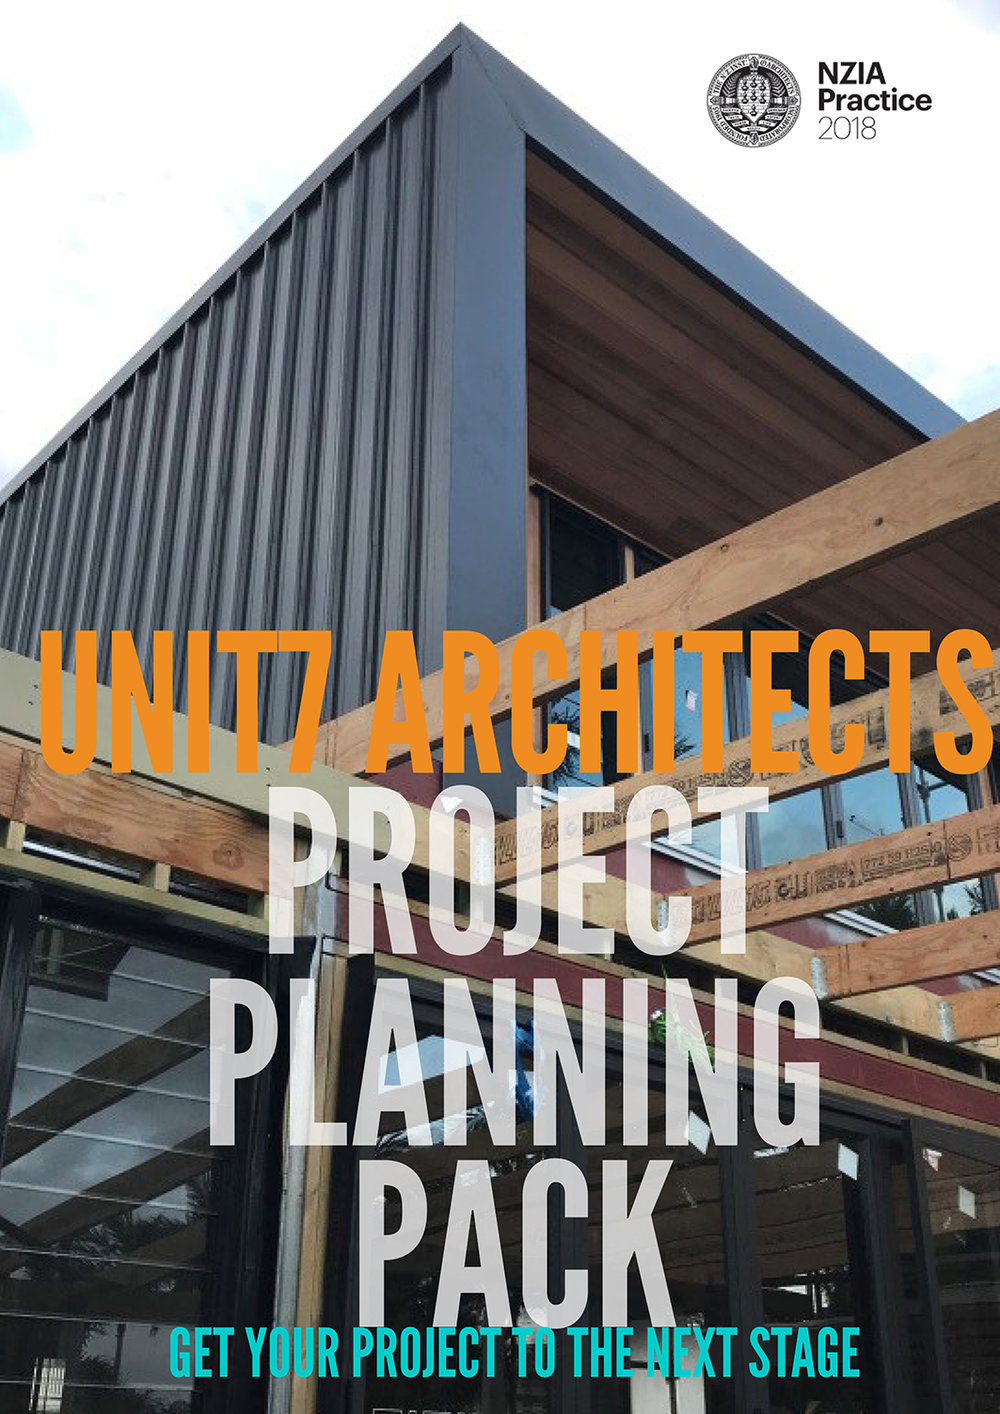 UNIT7_PROJECT PLANNING PACK_2018.jpg